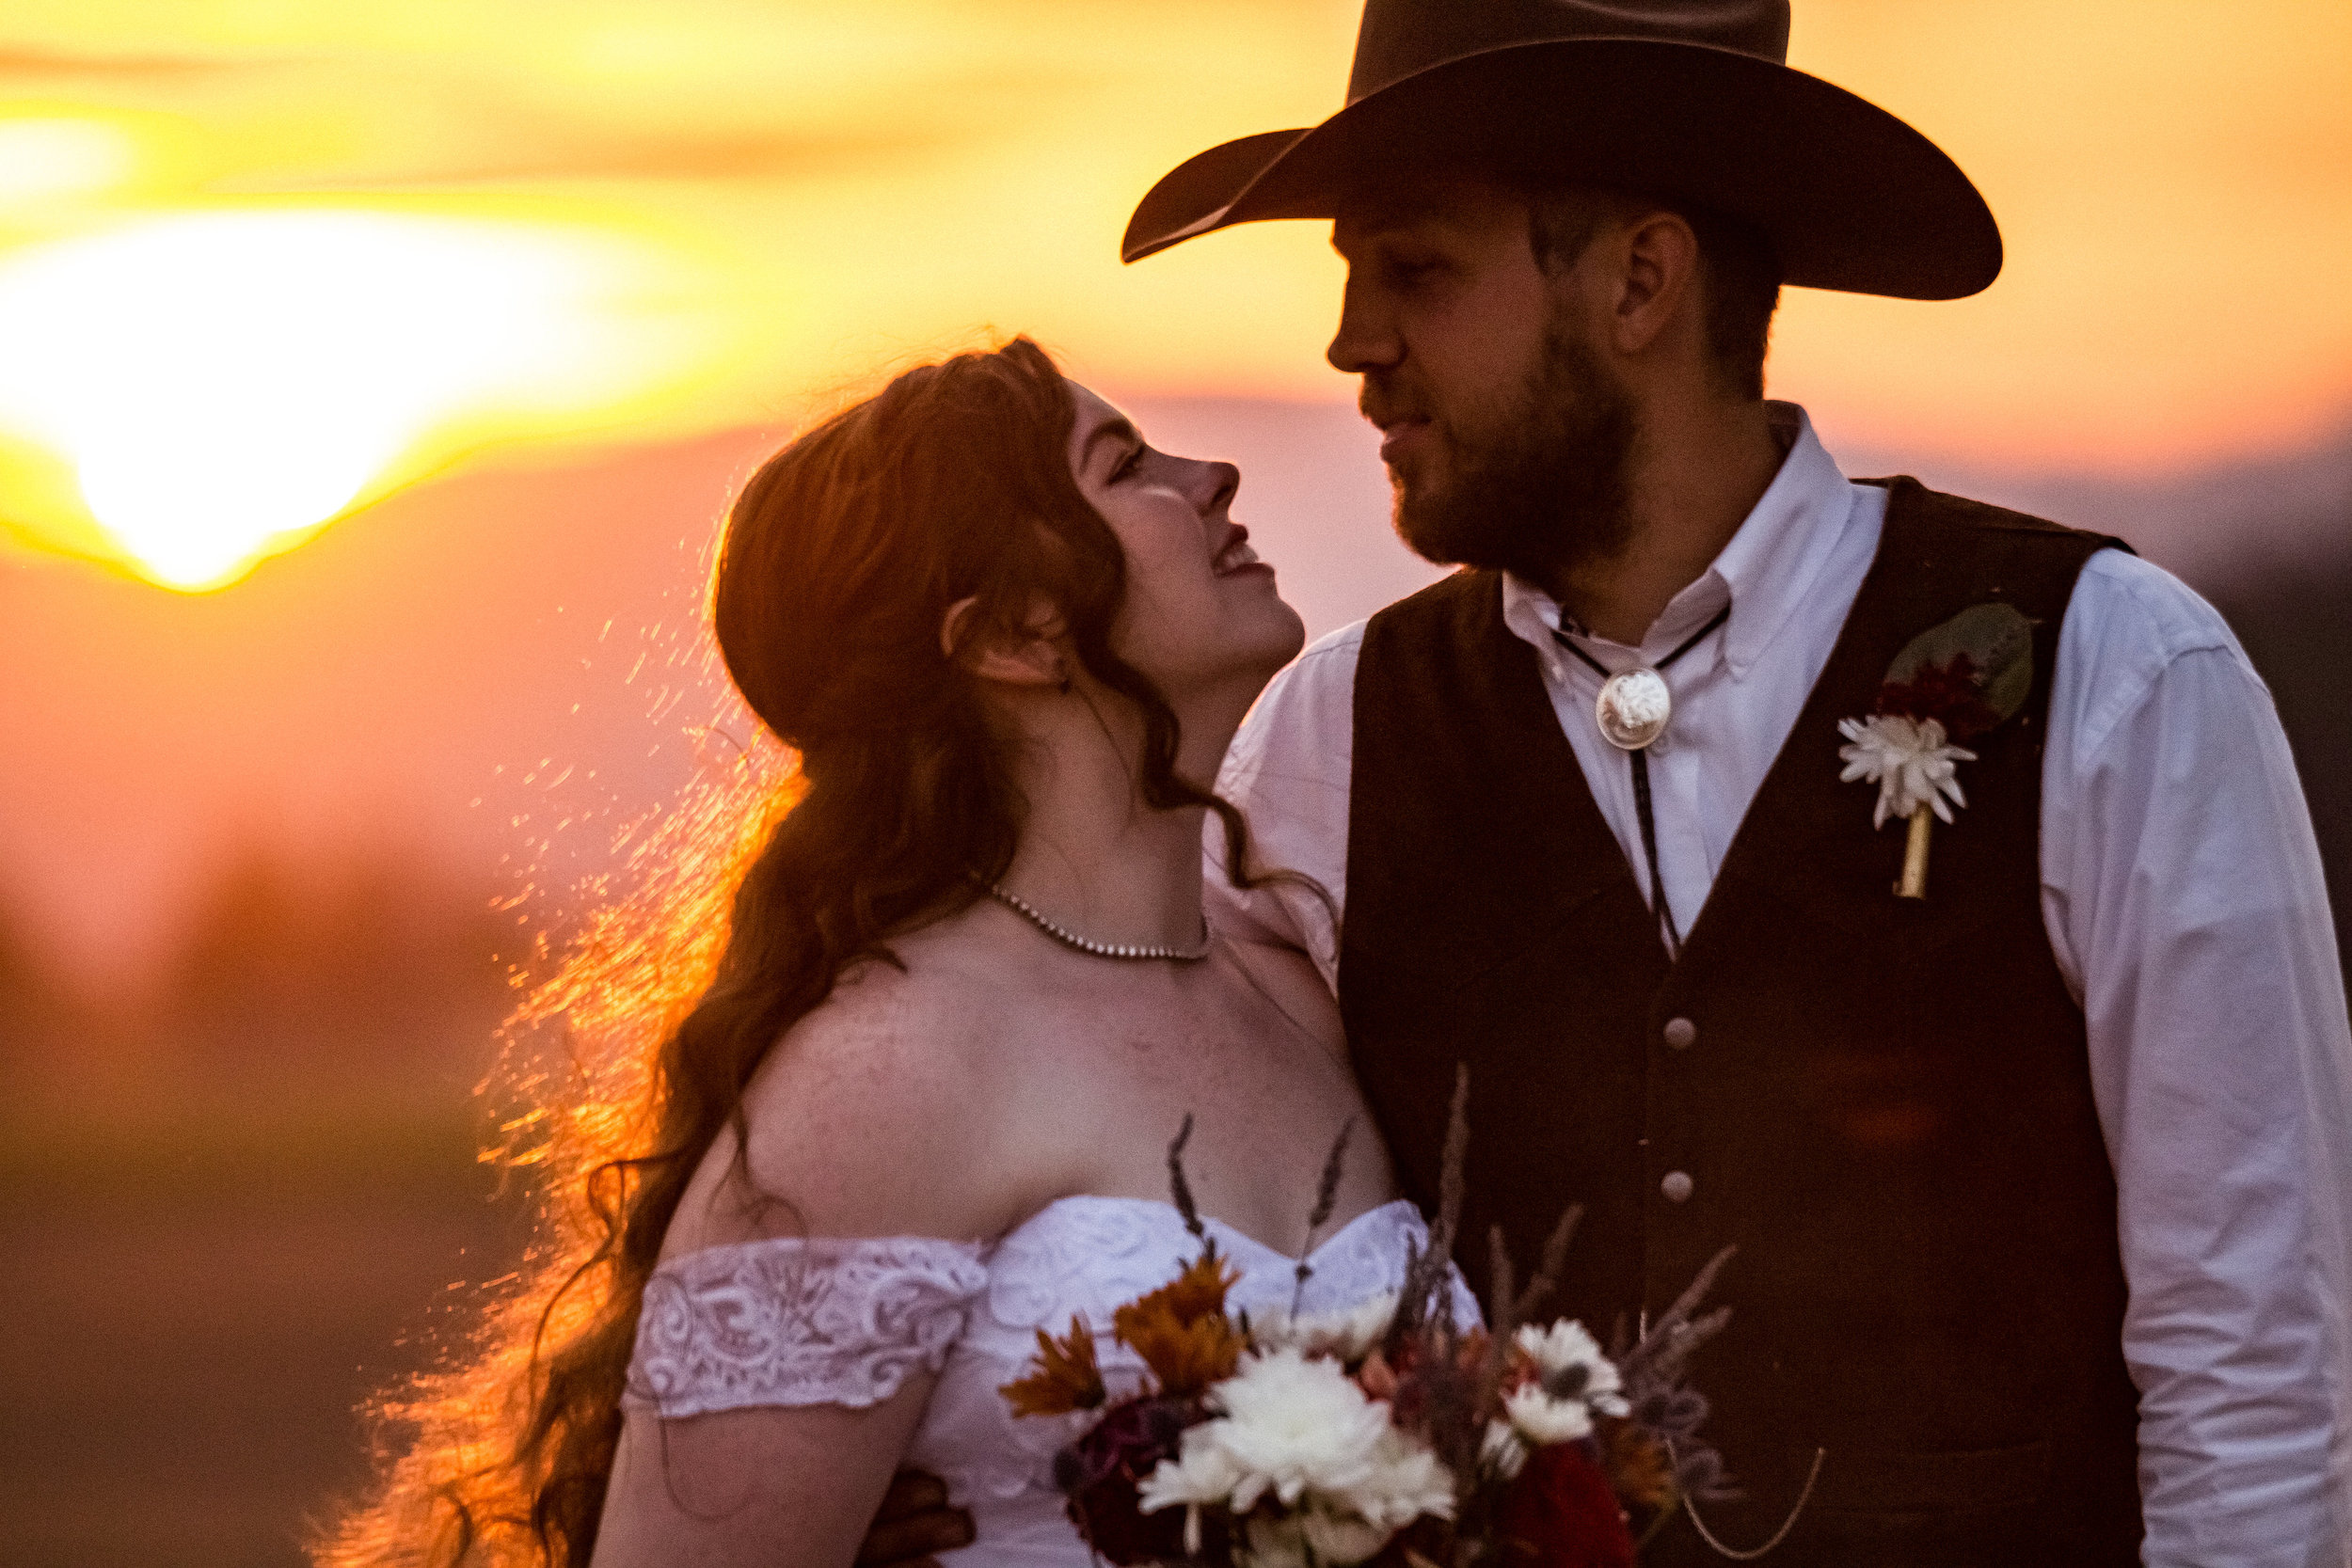 corvallis-oregon-wedding-photographer_Smith-Farms-Prechel-sunset.jpg